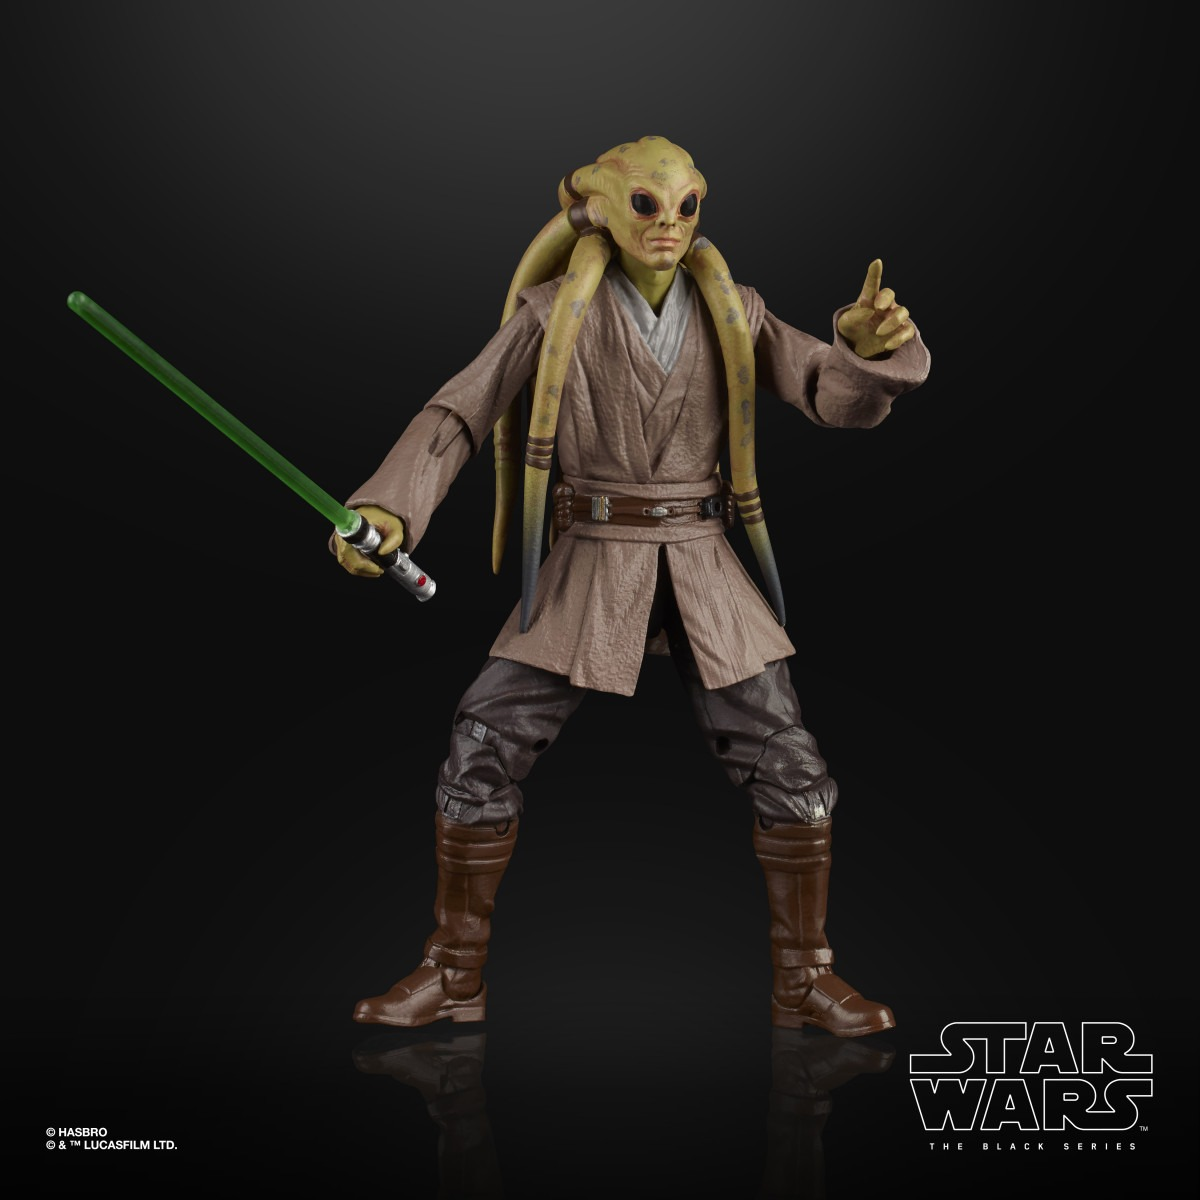 More Star Wars: The Black Series and Vintage Collection figures unveiled by Hasbro